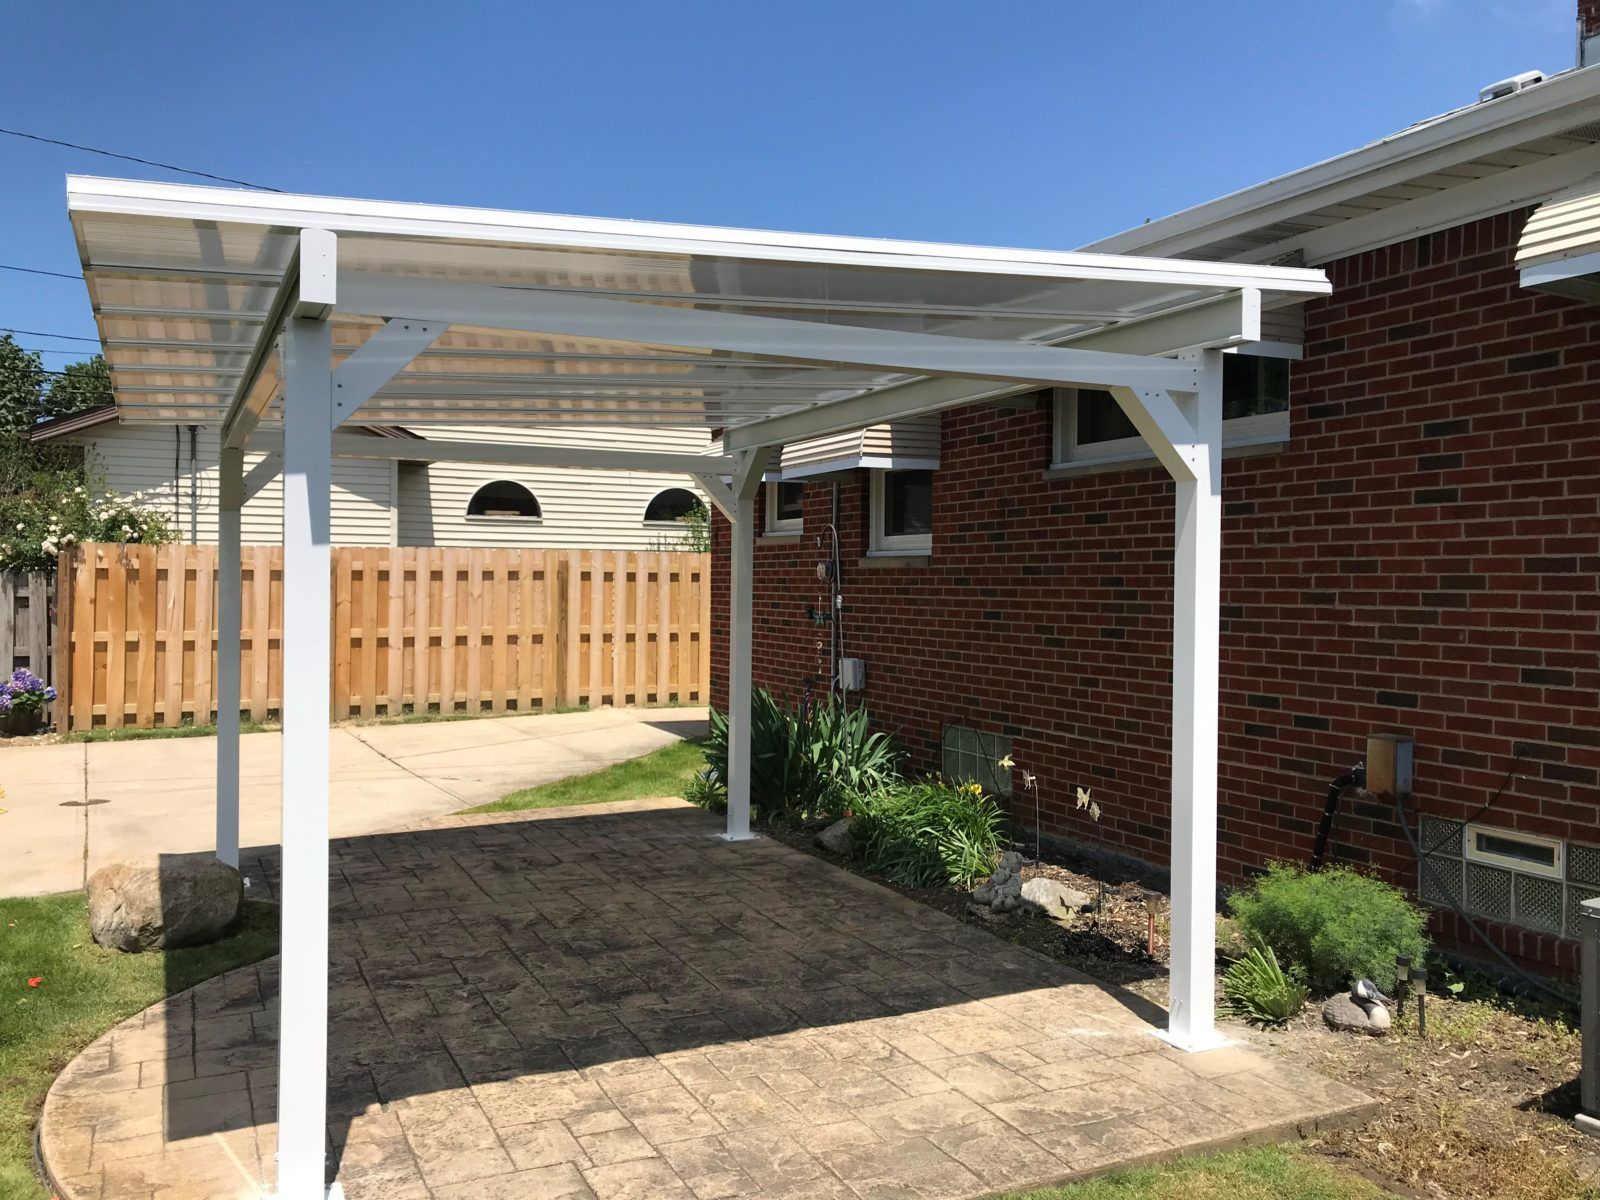 Bright Covers Photos Outdoor Shade Structures Patio Covers Porch Roofs In 2020 Patio Covered Patio Shade Structure